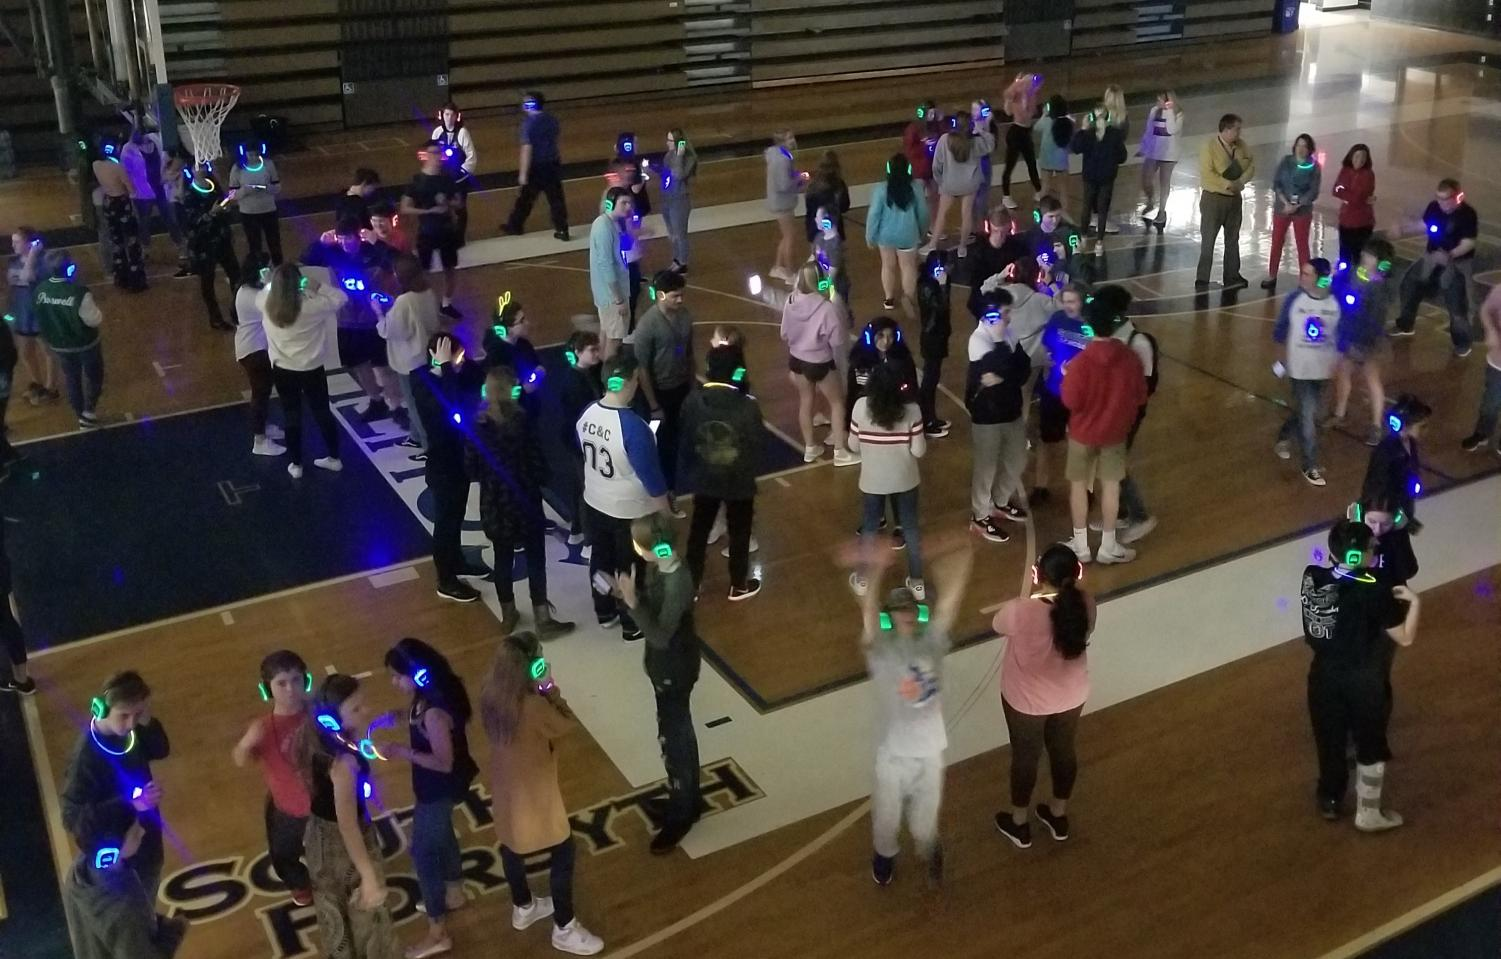 A sea of colors. Dream on 3 continues to raise funds for Carter and Carli, similar to the staff-student basketball game. The Silent Disco was the newest fundraiser for Carter and Carli's dream, and hundreds of students attended to jam out.